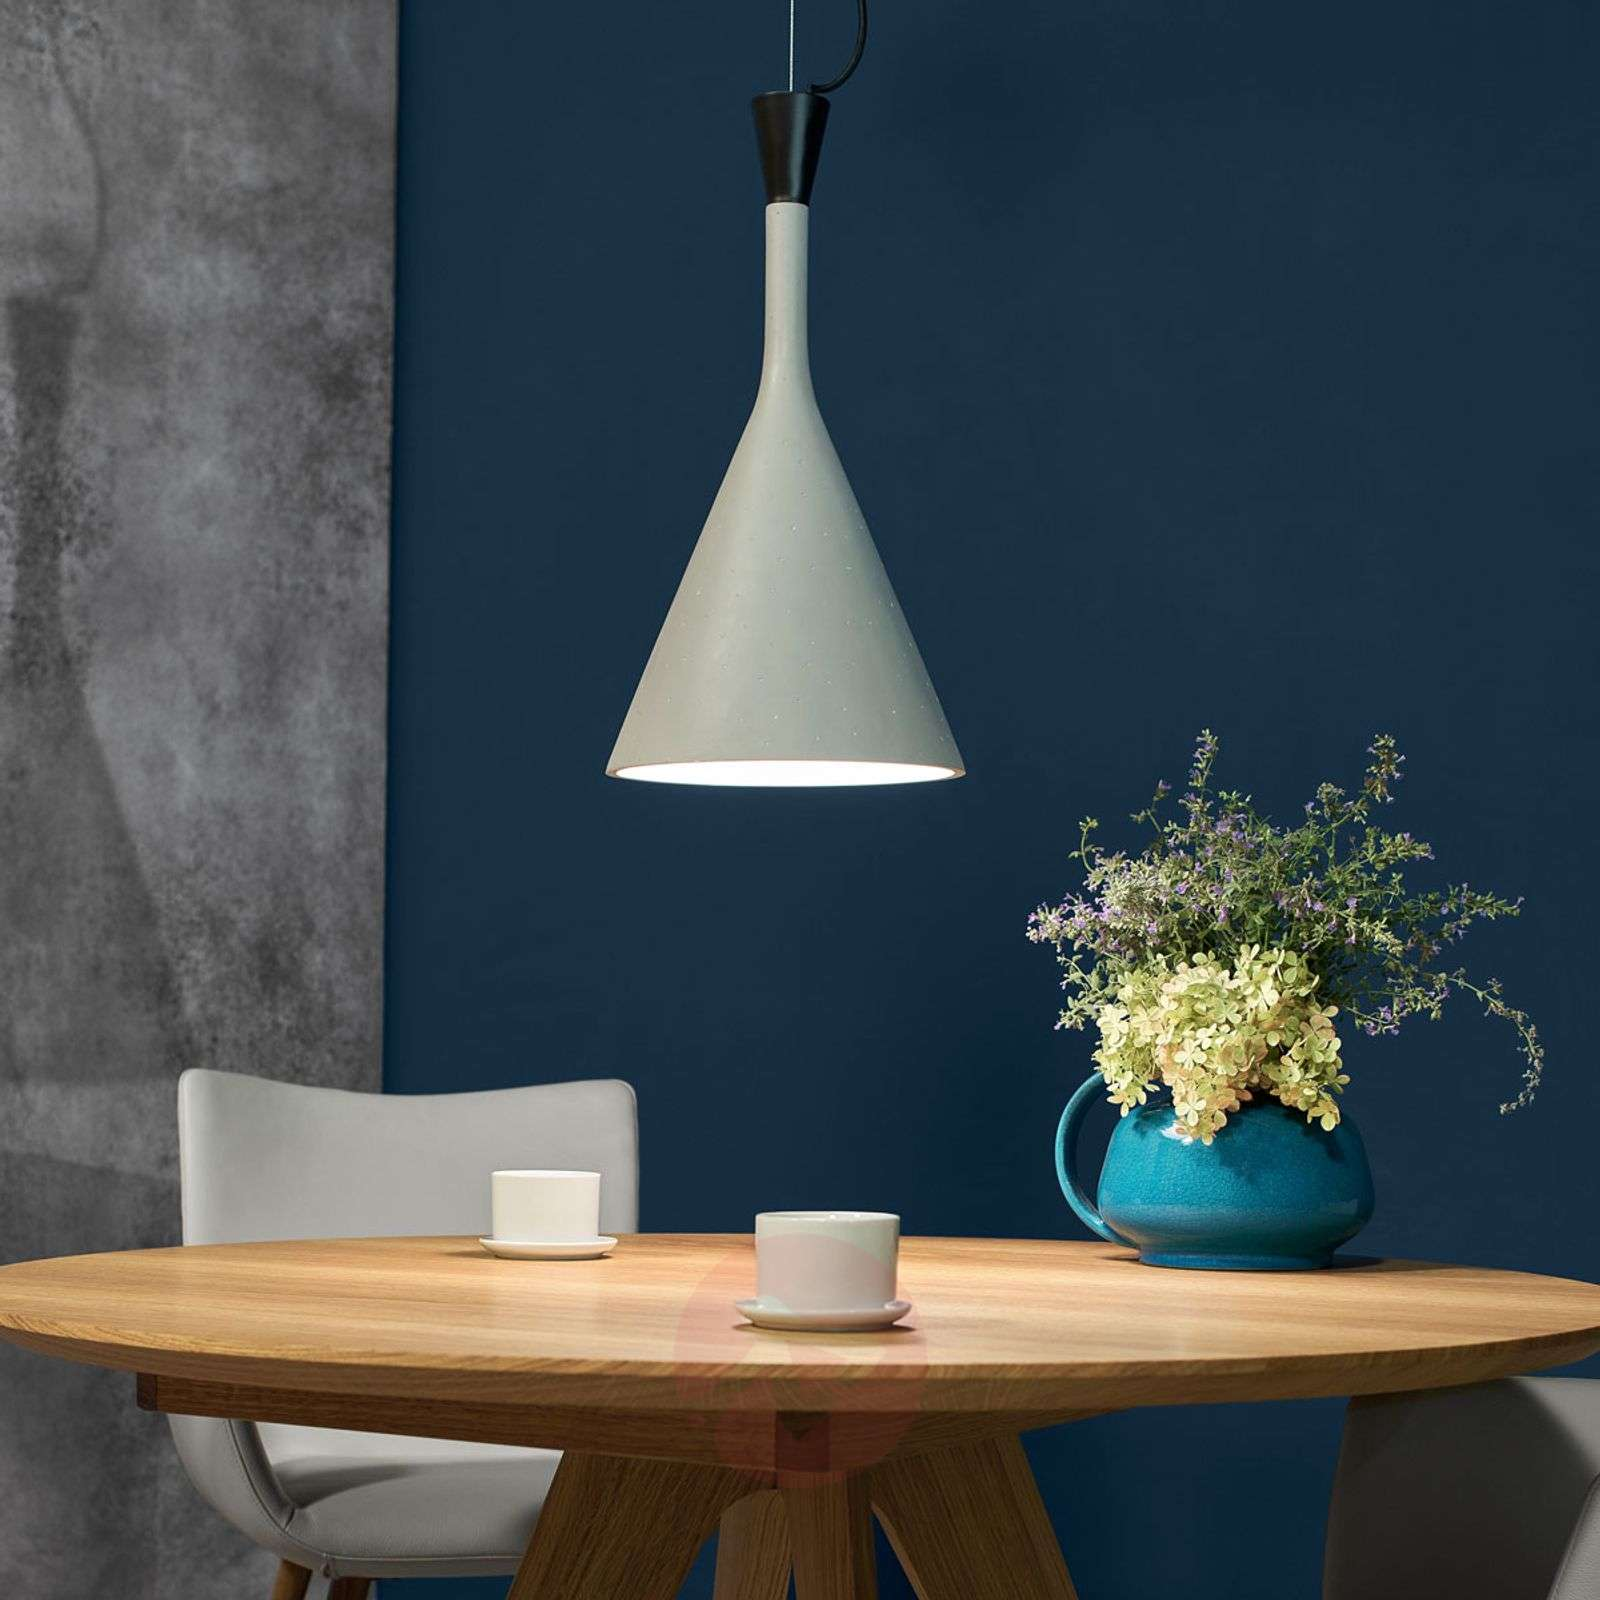 benjamin h m hubert cast by design heavy pendant f decode lamp t concrete pin llwdesign walled r lights thin e o